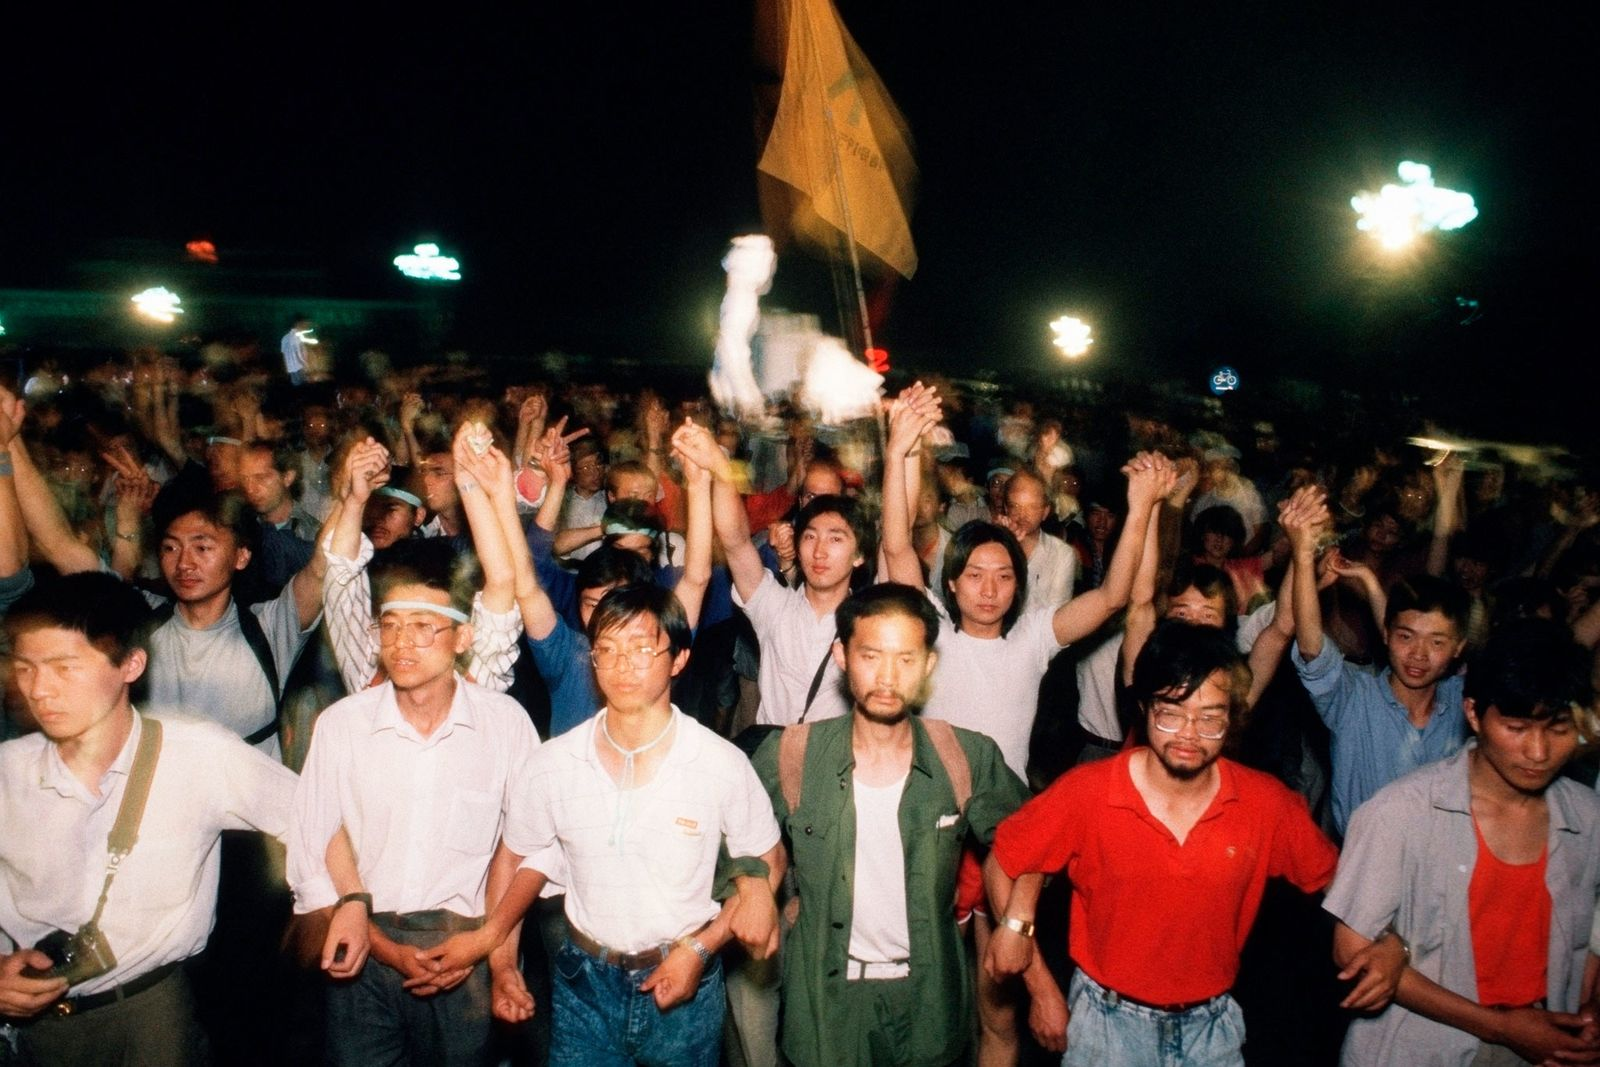 Pro-democracy students march through Tiananmen Square in Beijing to demand more democratic rule in Communist China.